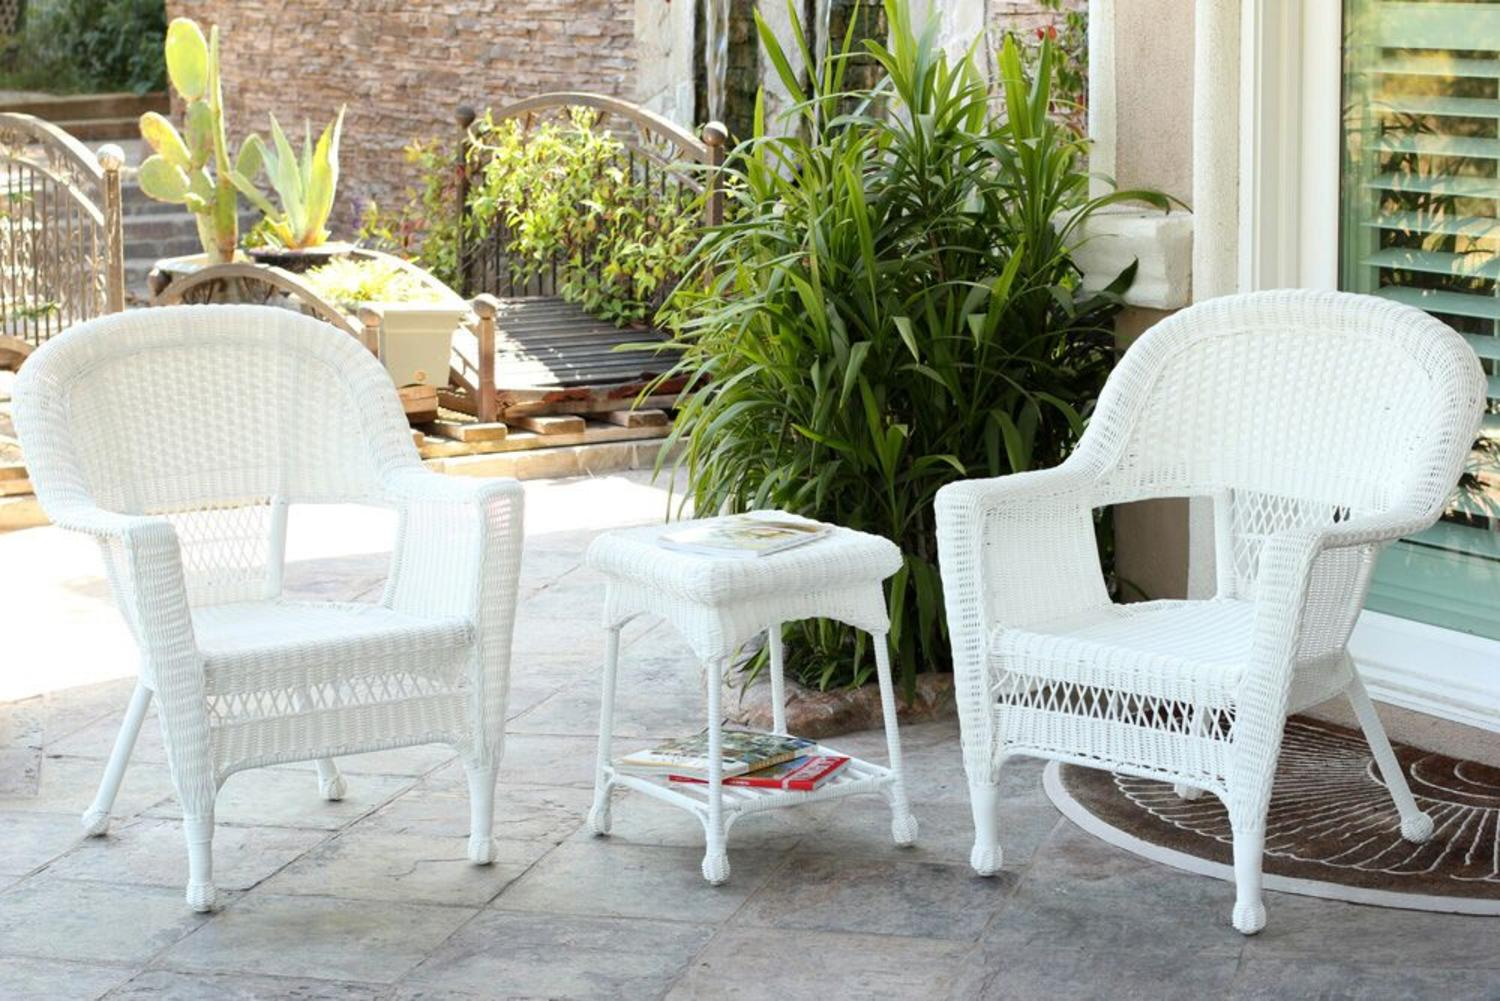 Outdoor Wicker Patio Furniture Sofa 3 Seater Luxury Comfort Grey Wicker  Couch   Walmart.com